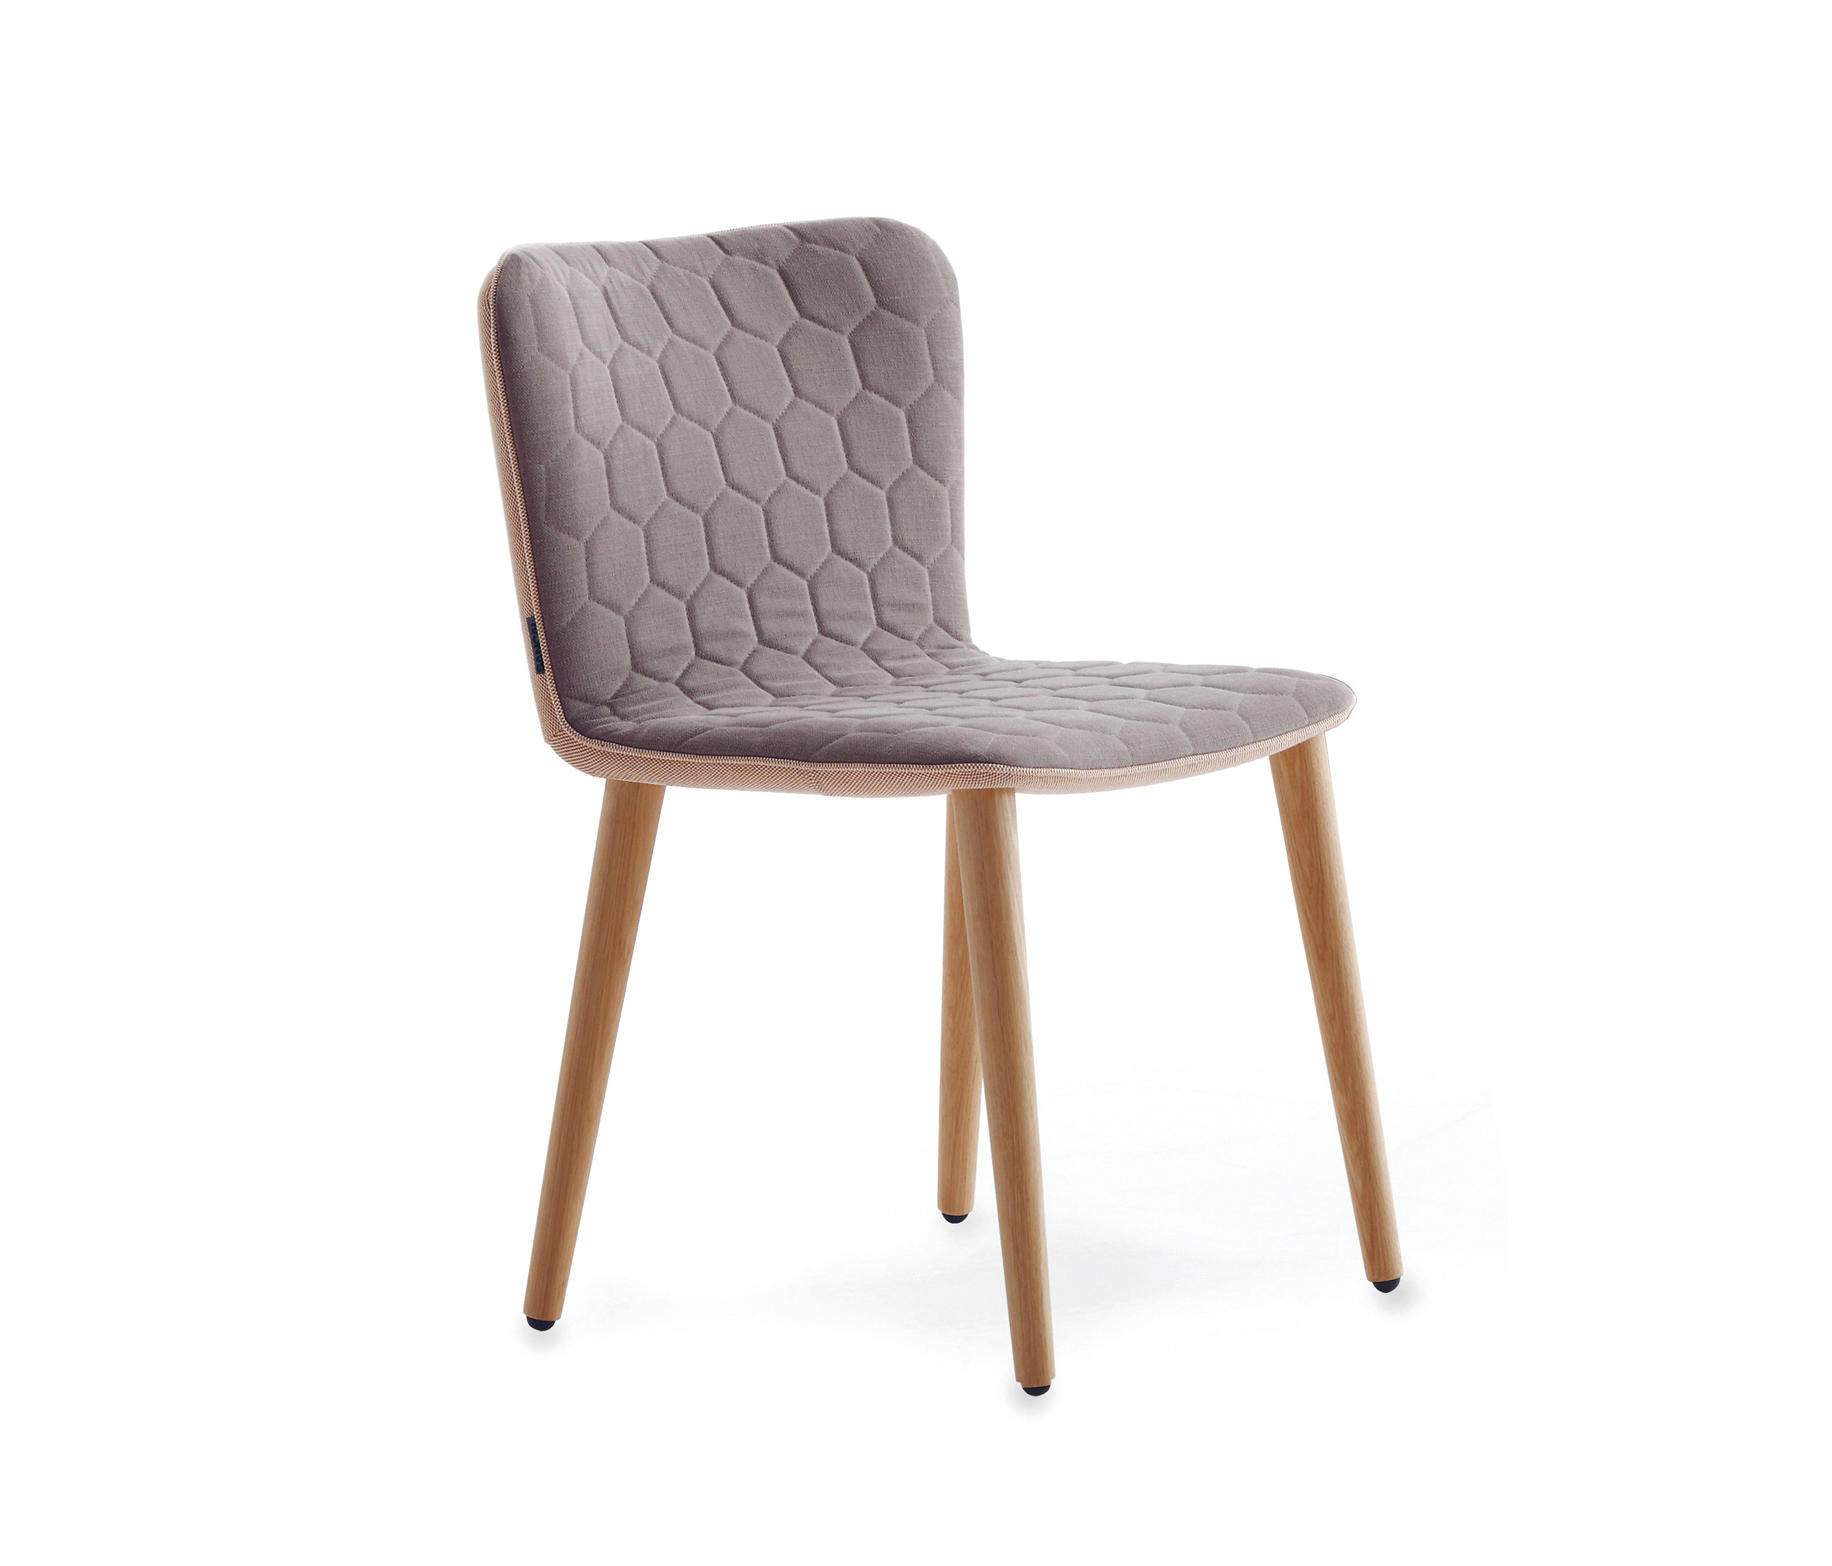 Tea Restaurant Chairs From Sancal Architonic # Federico Muebles